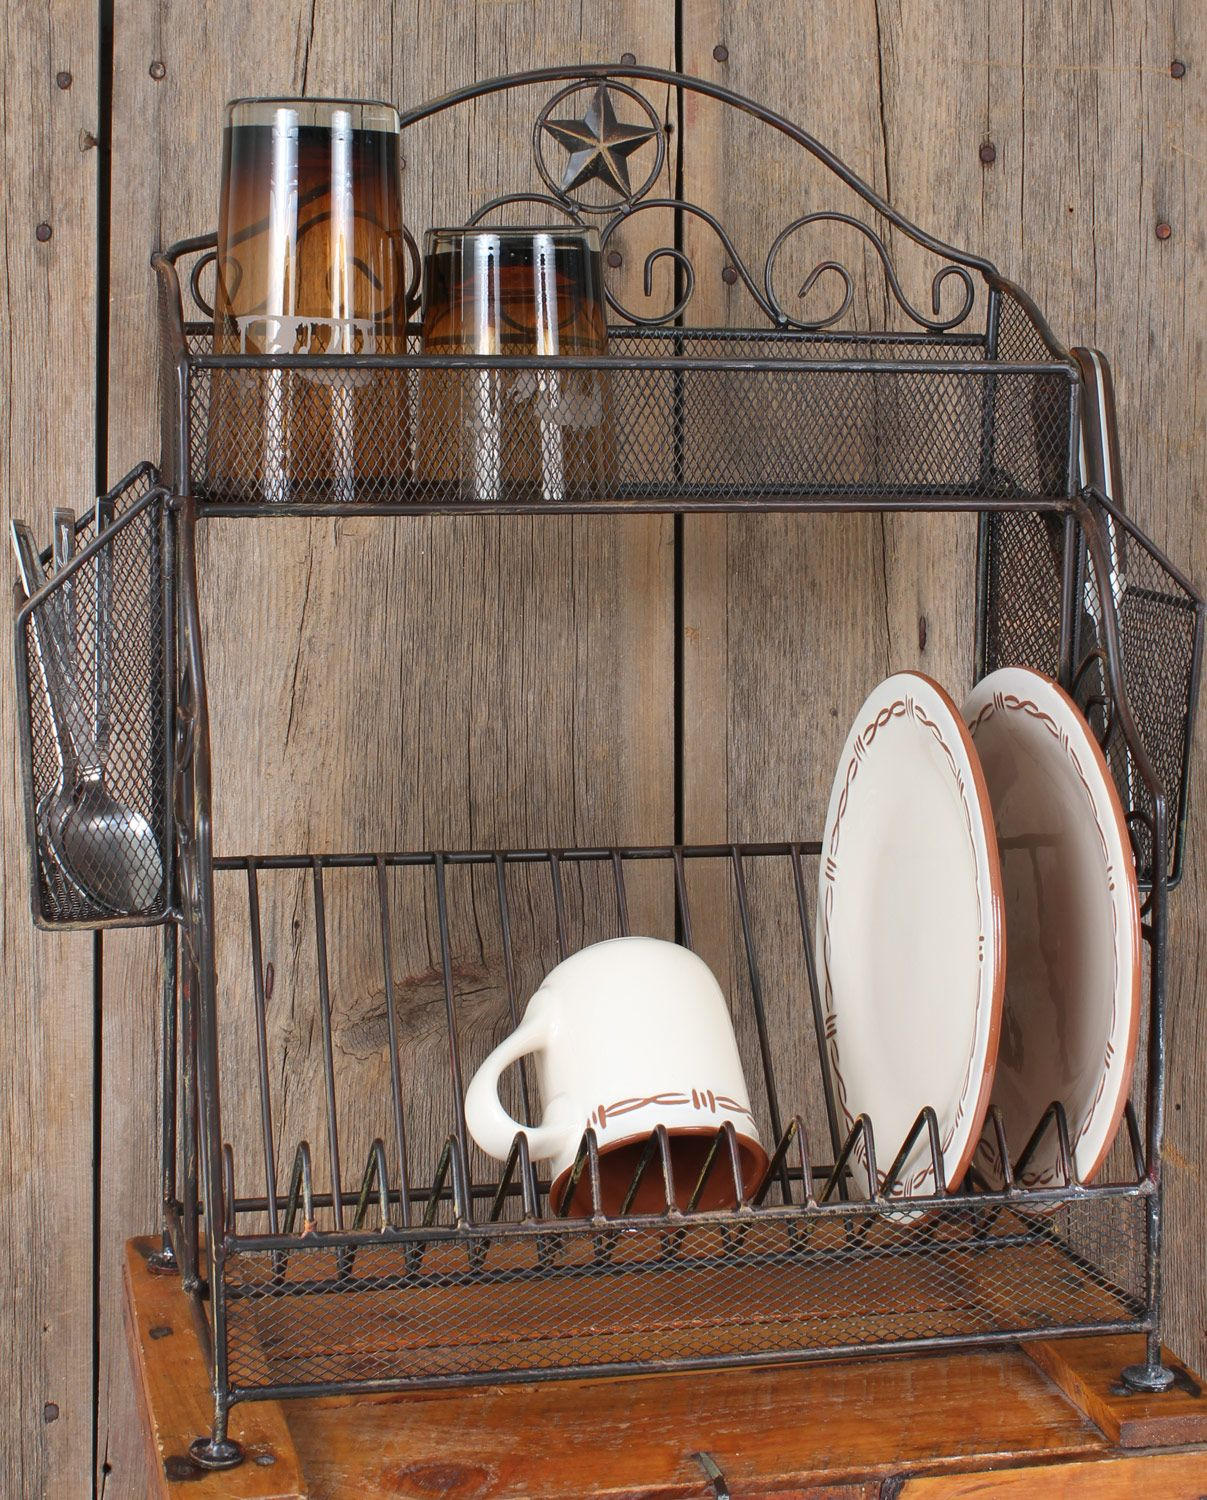 Western Rustic Decor Metal Star Dish Rack Kitchenware Decor Gifts Fort Western